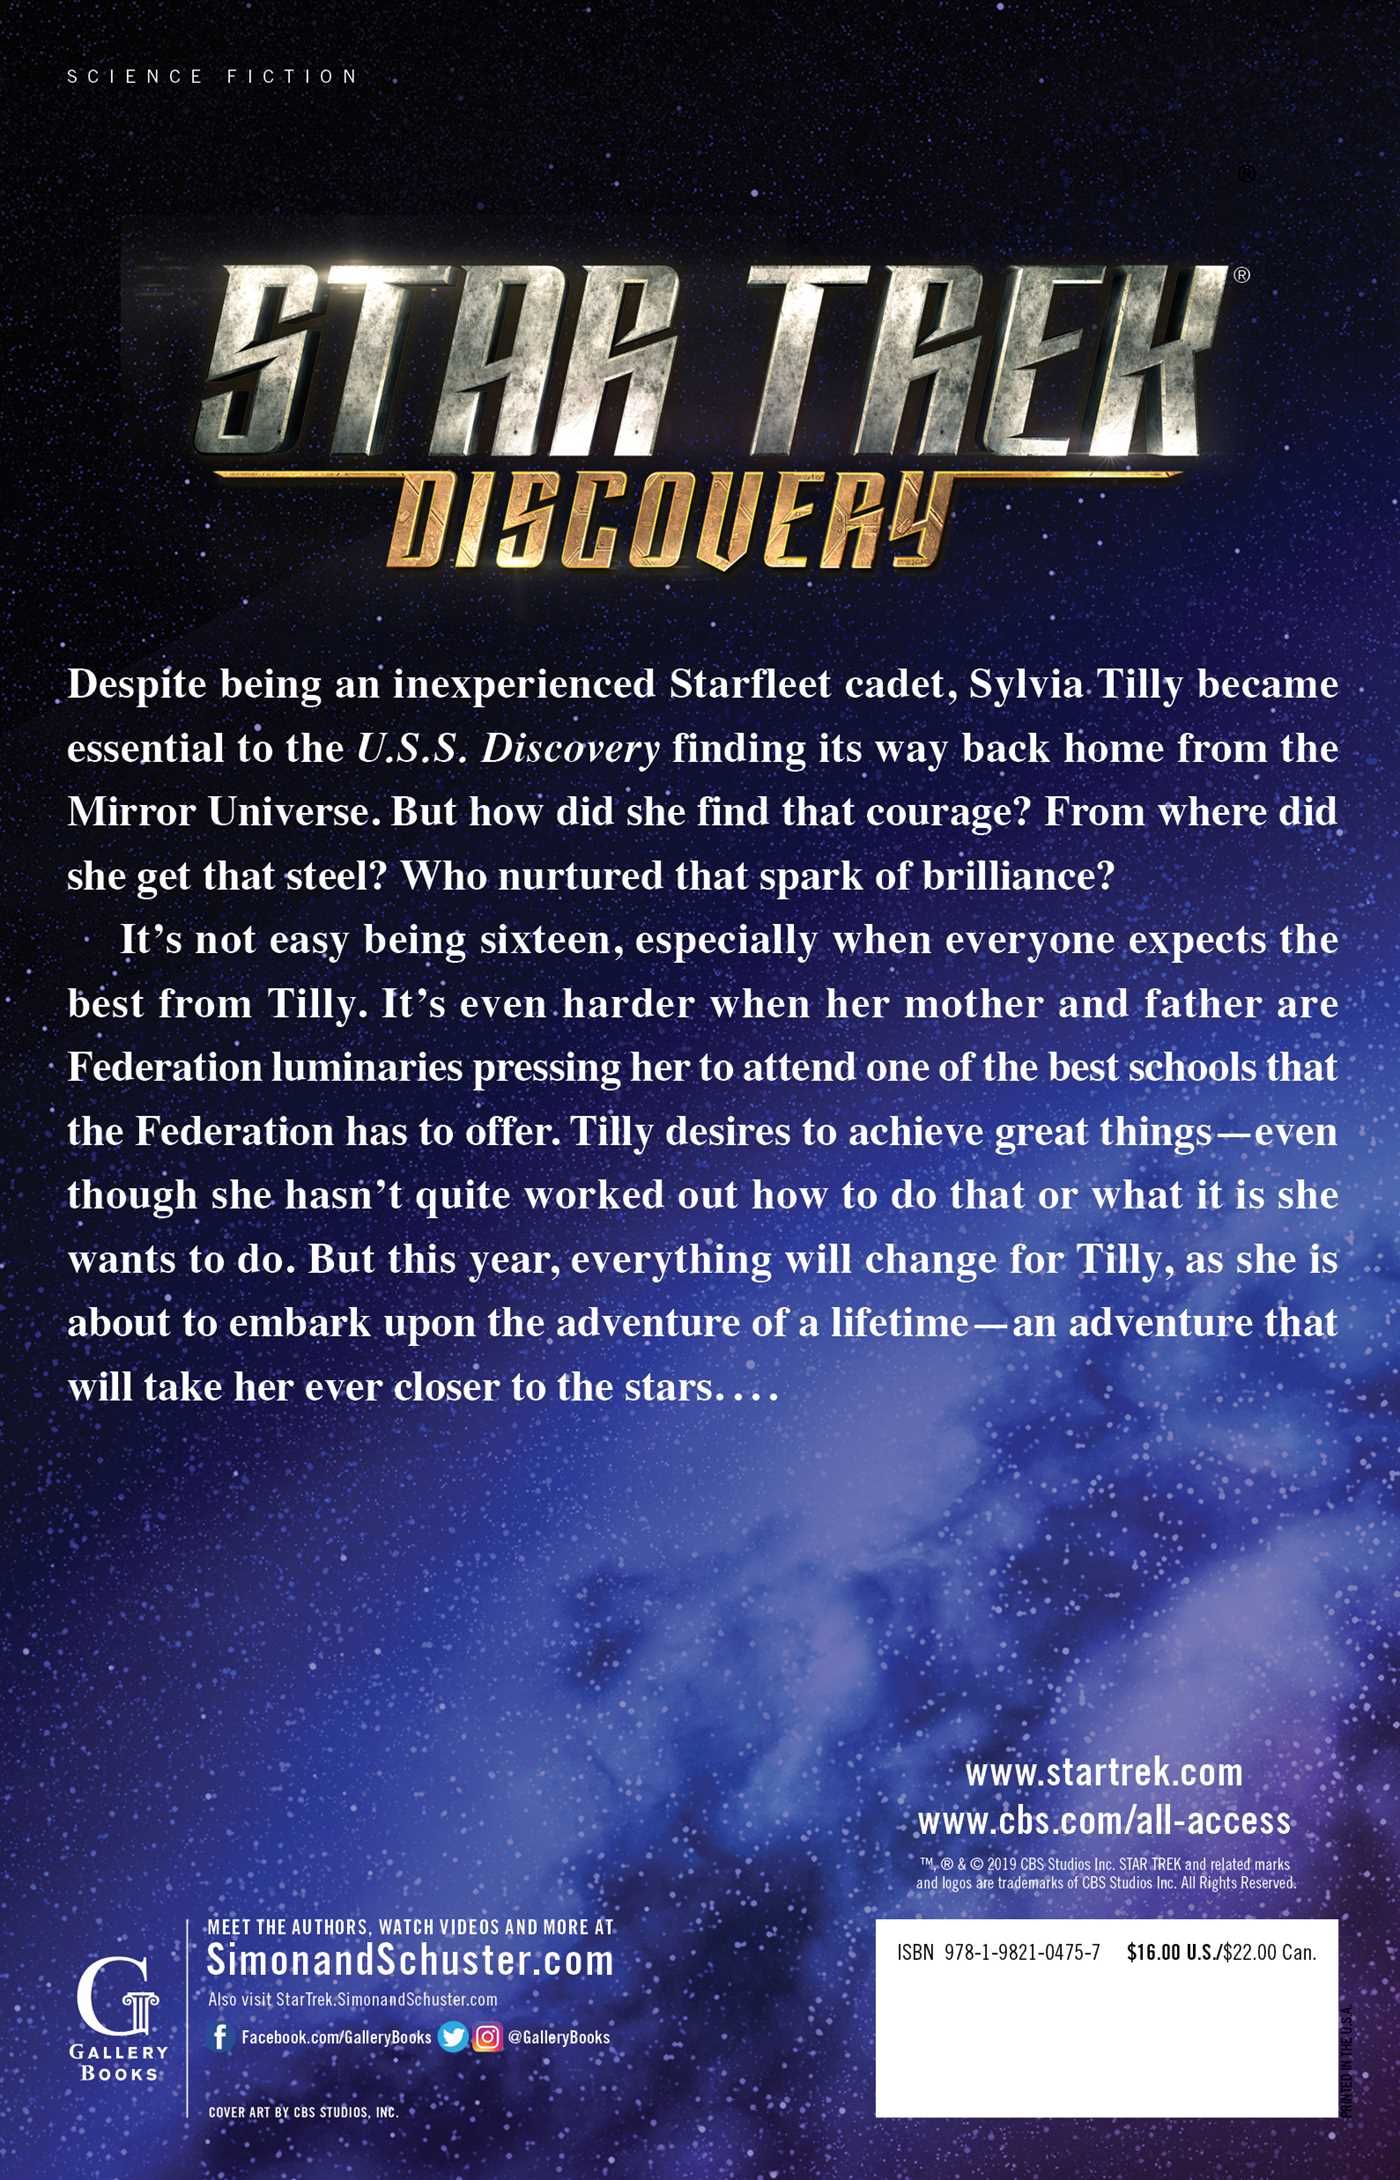 Star trek discovery the way to the stars 9781982104757 hr back